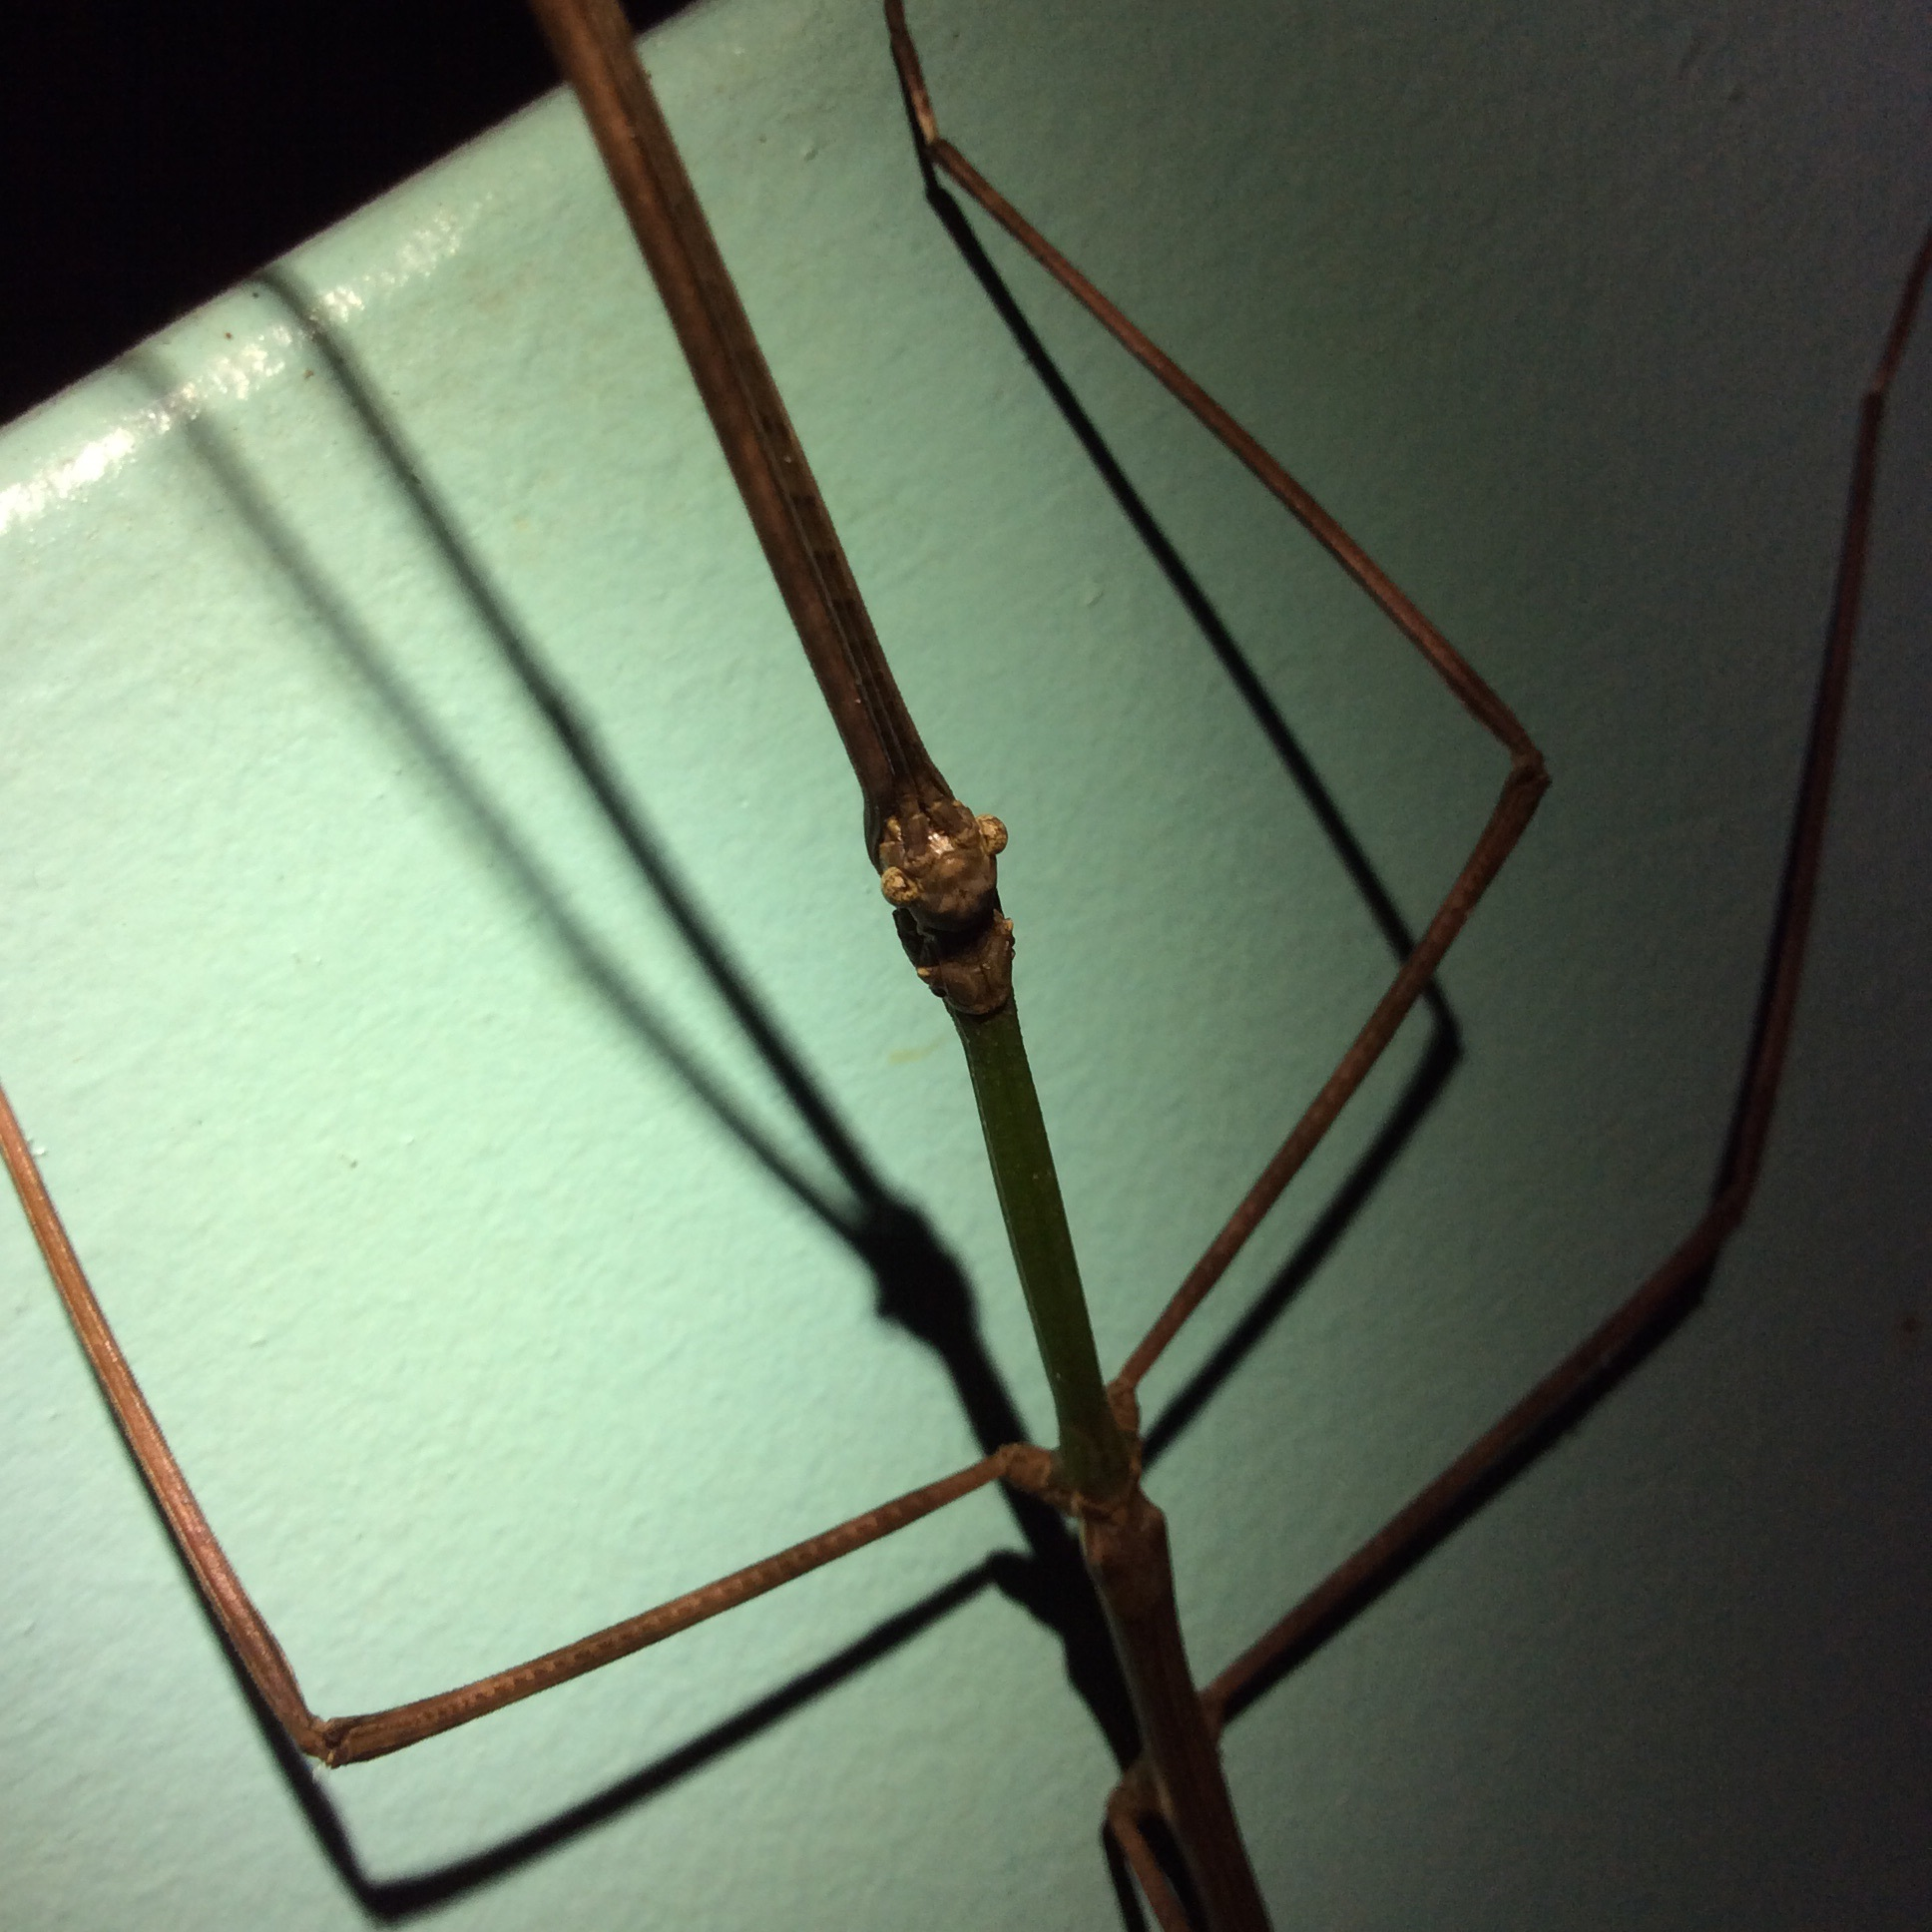 Stick bugs! This guy was about 24 cm from stick antenna to stick butt!